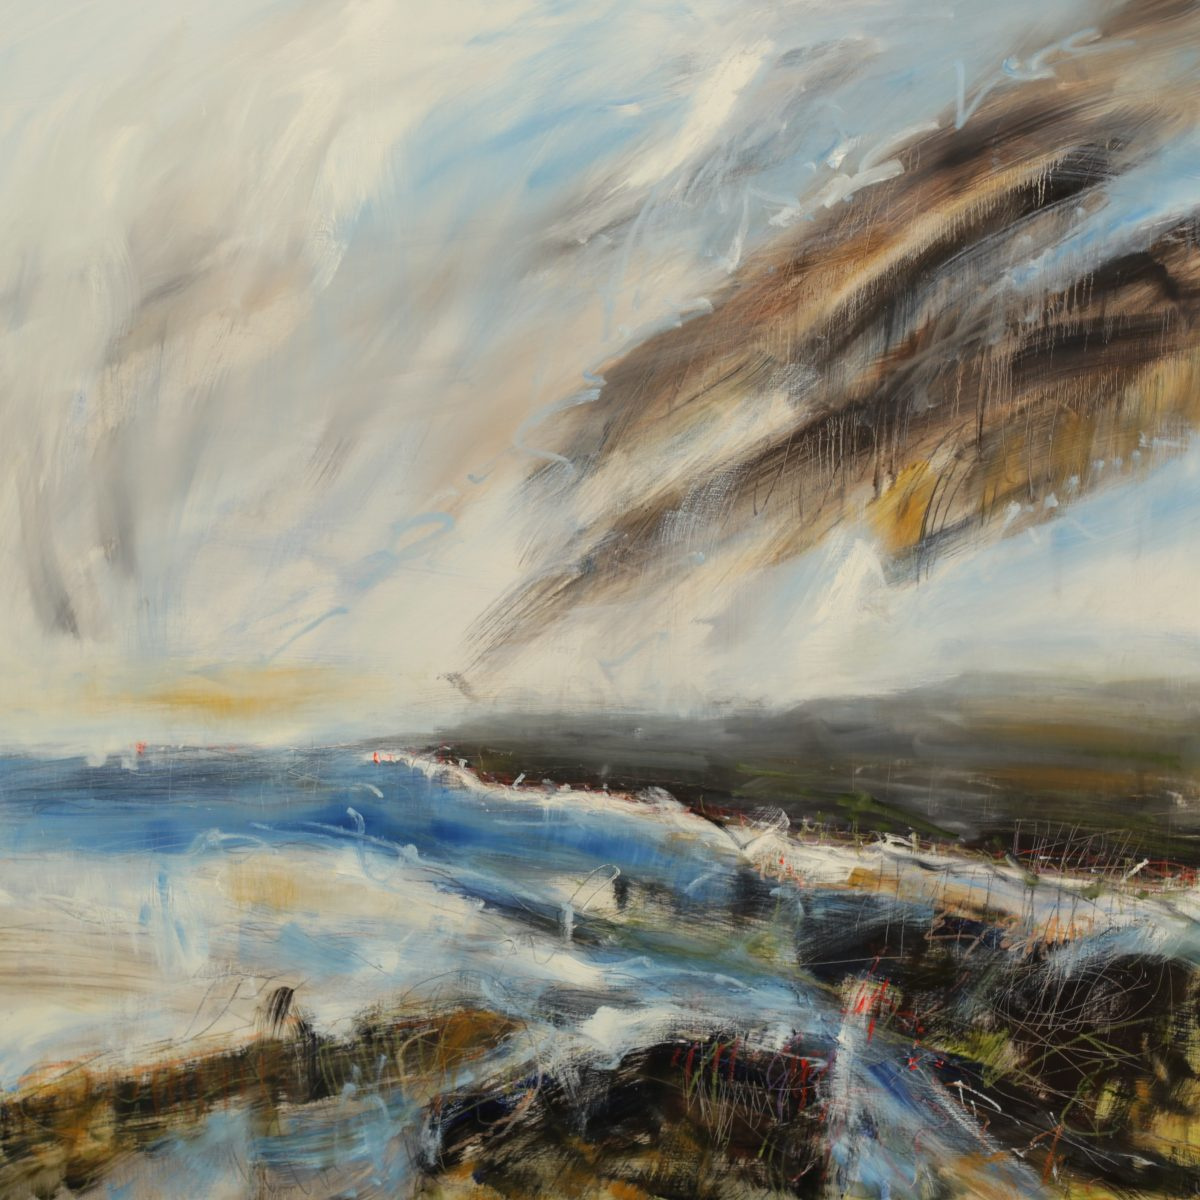 Wild Skies, 2018, Lucy Marks,120 x 120 cm, Oil on Wood Panel